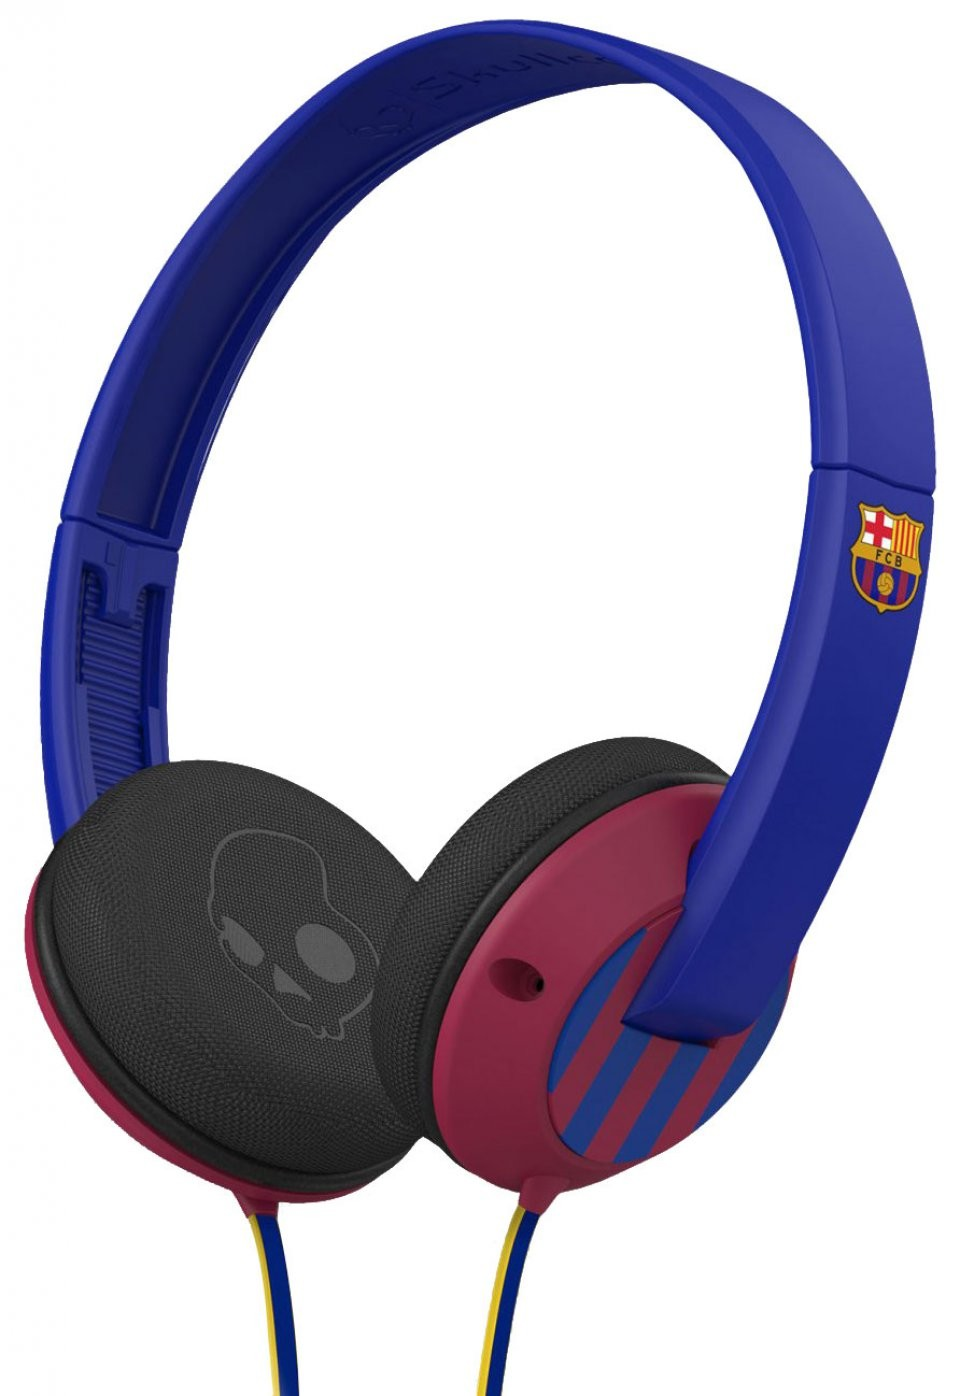 casque filaire fc barcelona par skullcandy casque avec micro. Black Bedroom Furniture Sets. Home Design Ideas